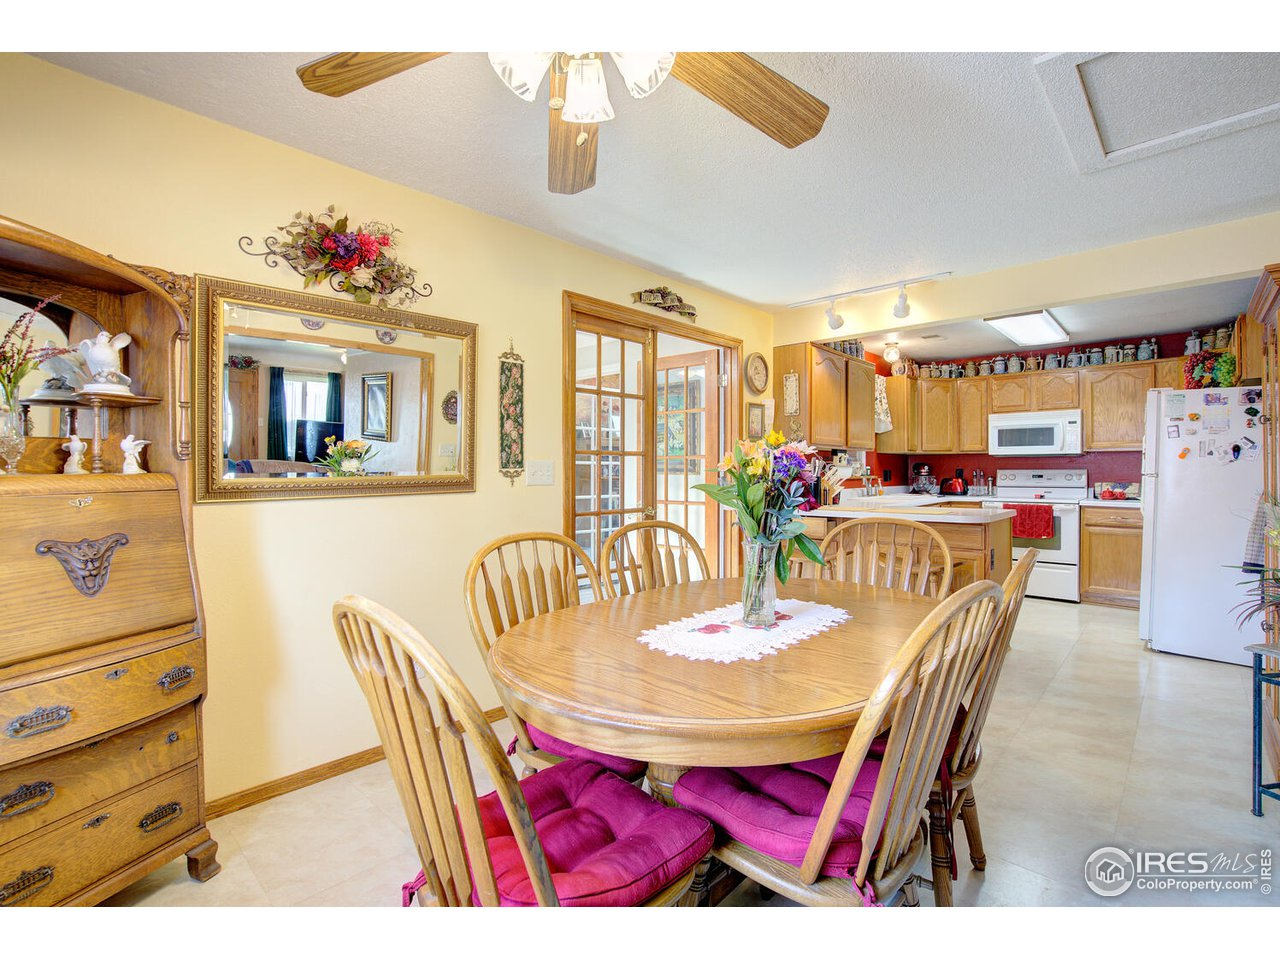 All appliances included even the freezer in the laundry room and garage fridge!